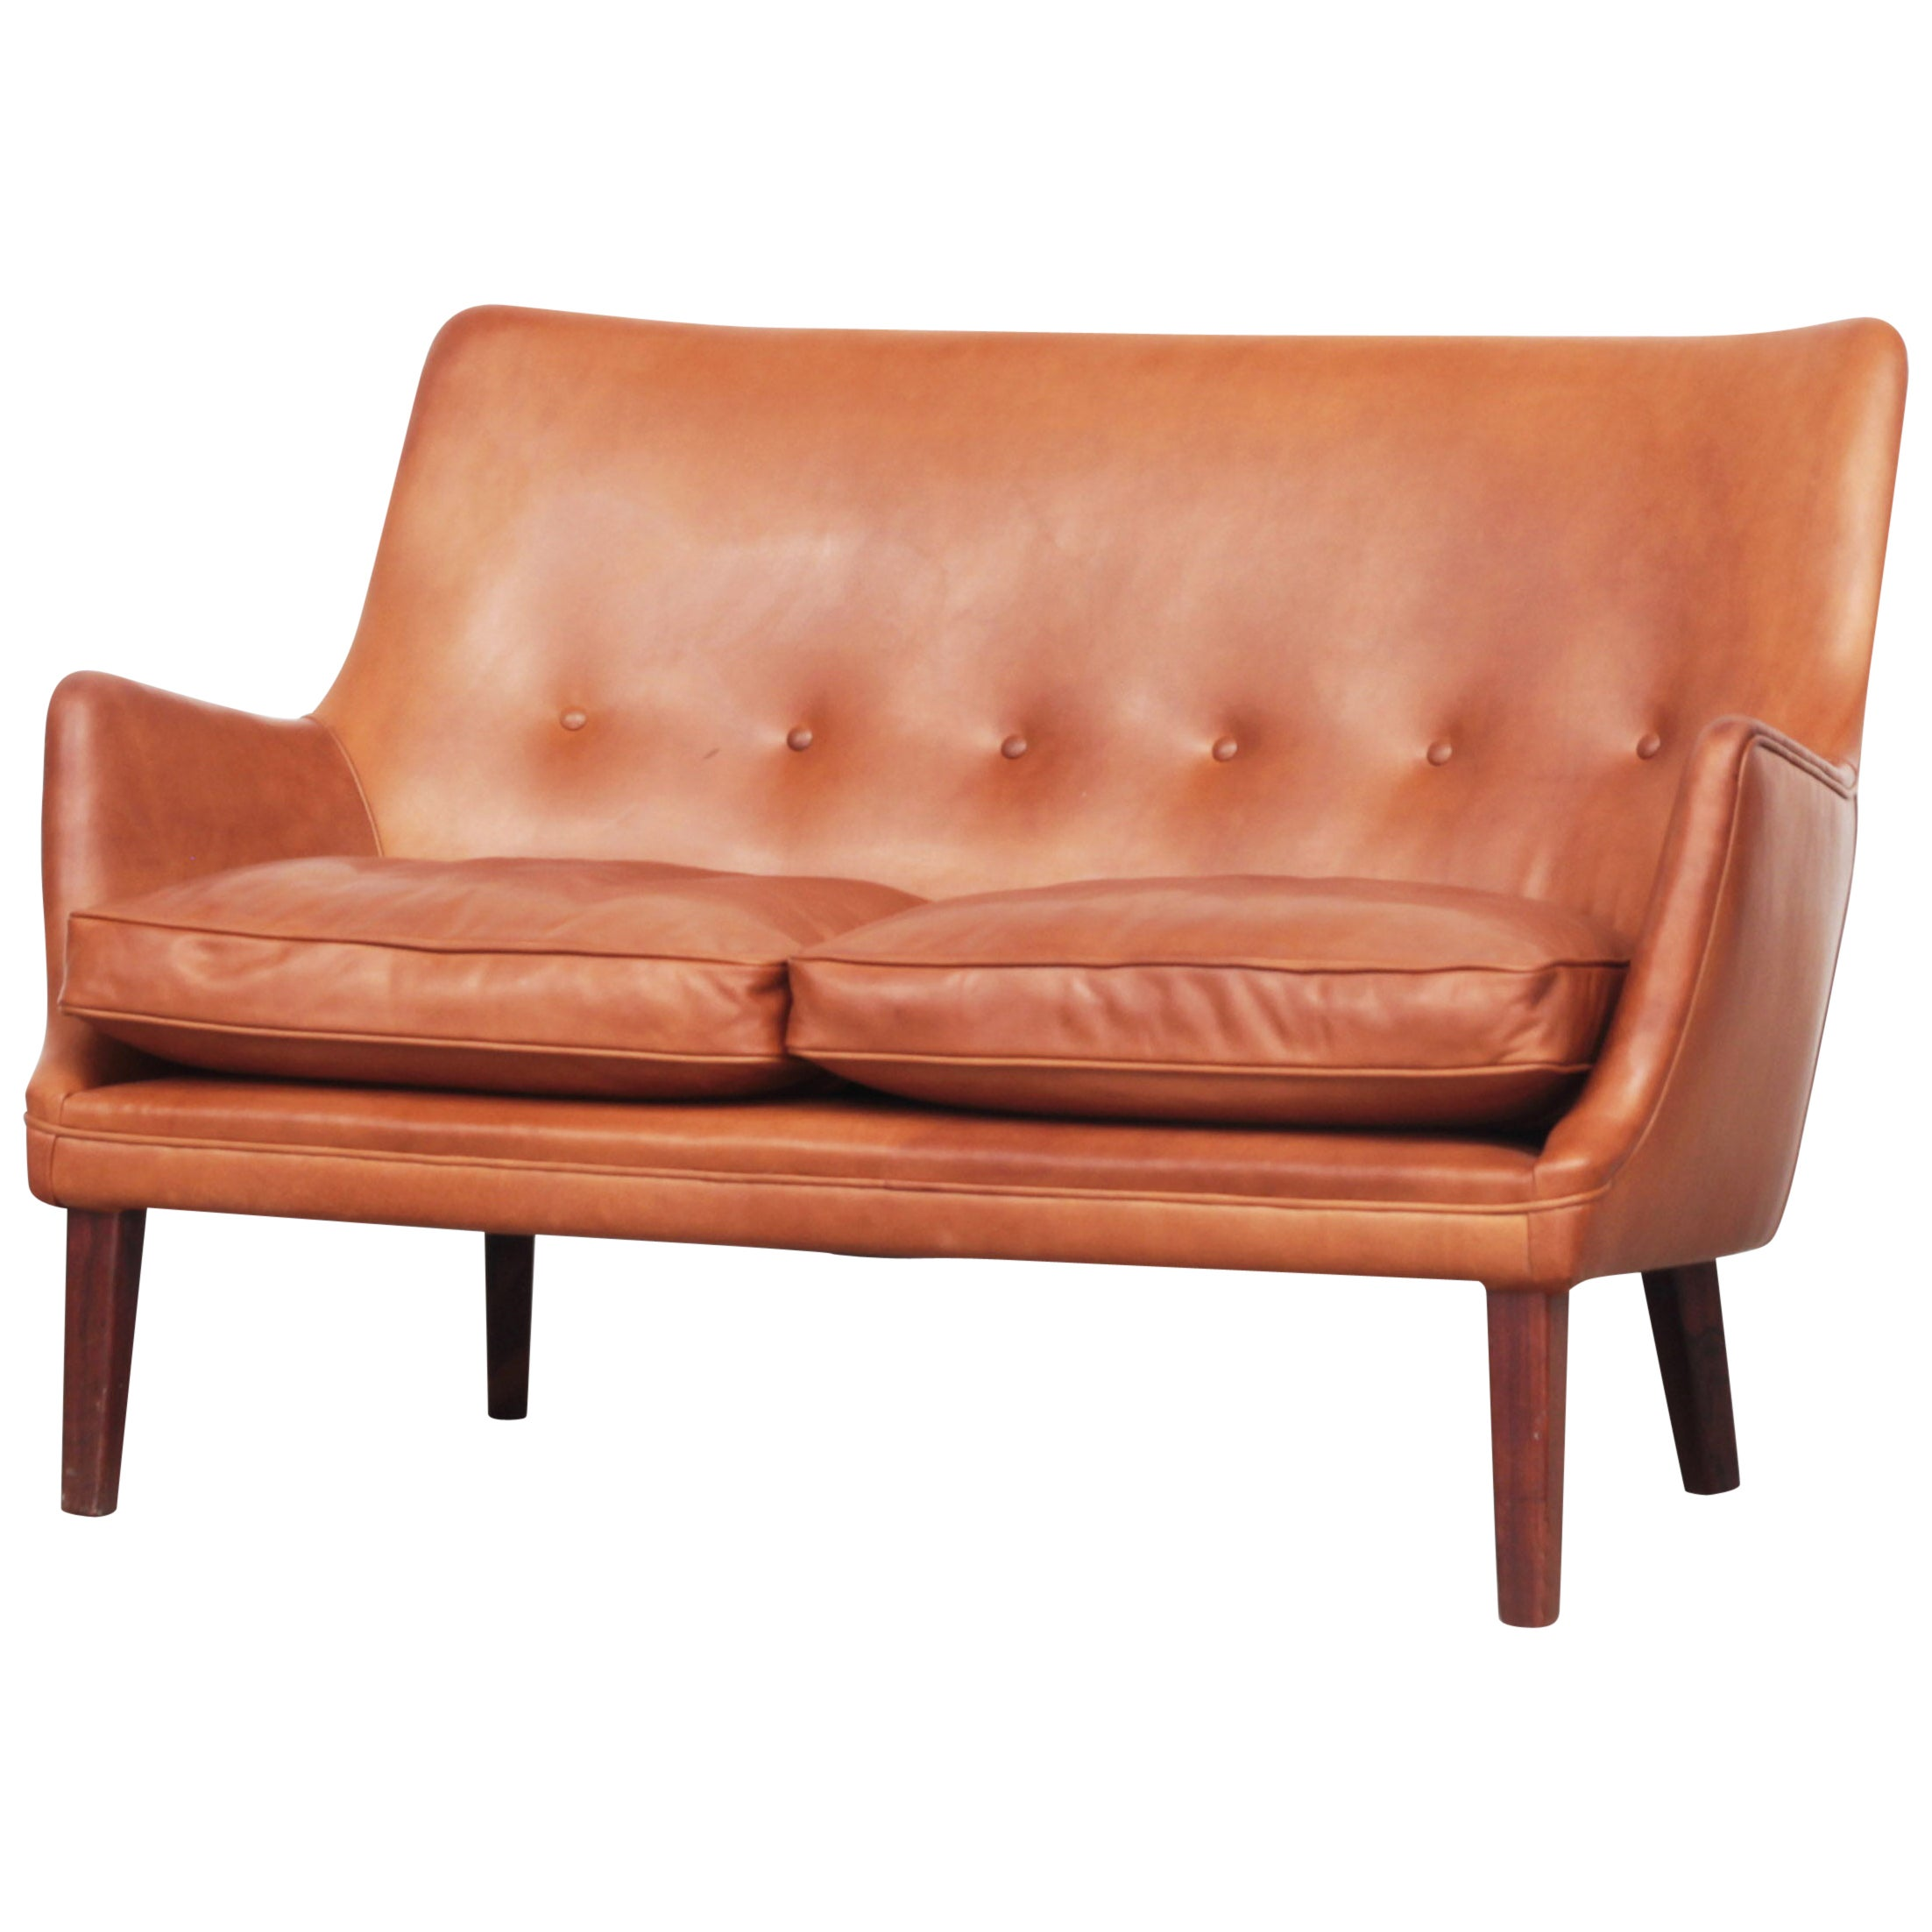 Rare Sofa by Arne Vodder for Ivan Schlechter Denmark, 1953